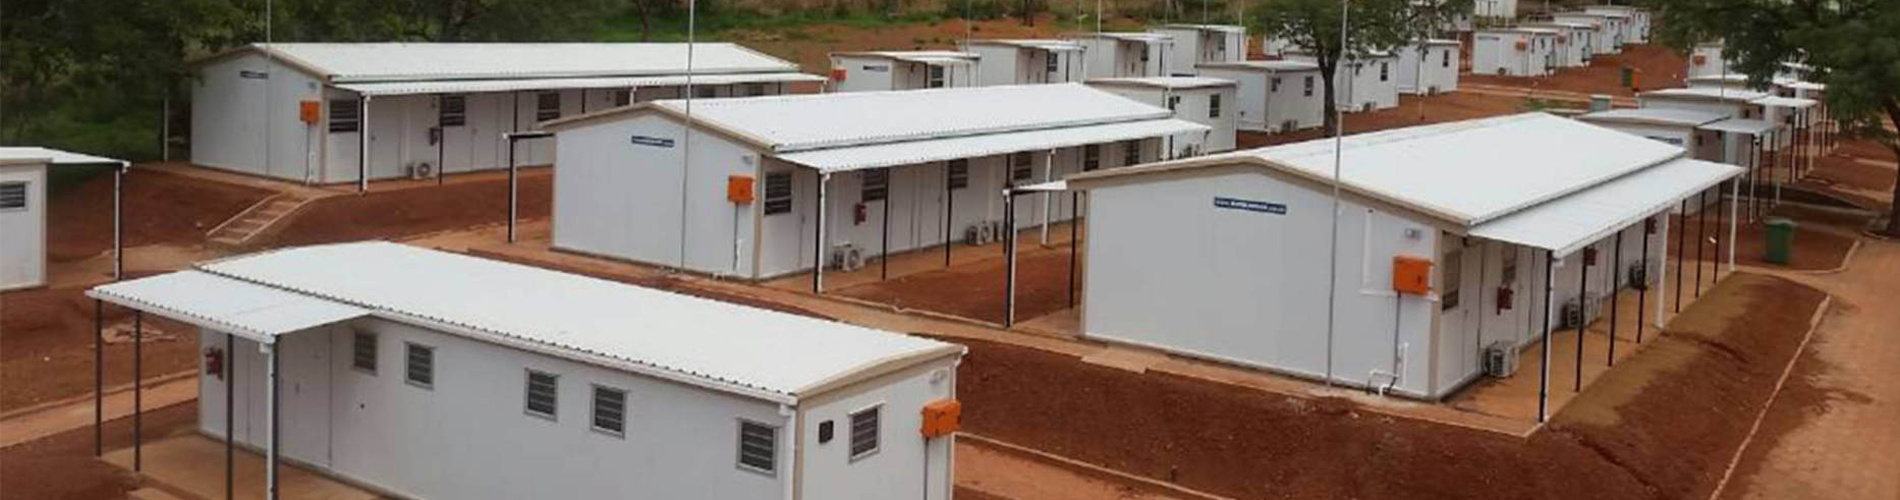 A modular parkhome or modular office is ideal for any mining or construction camp.